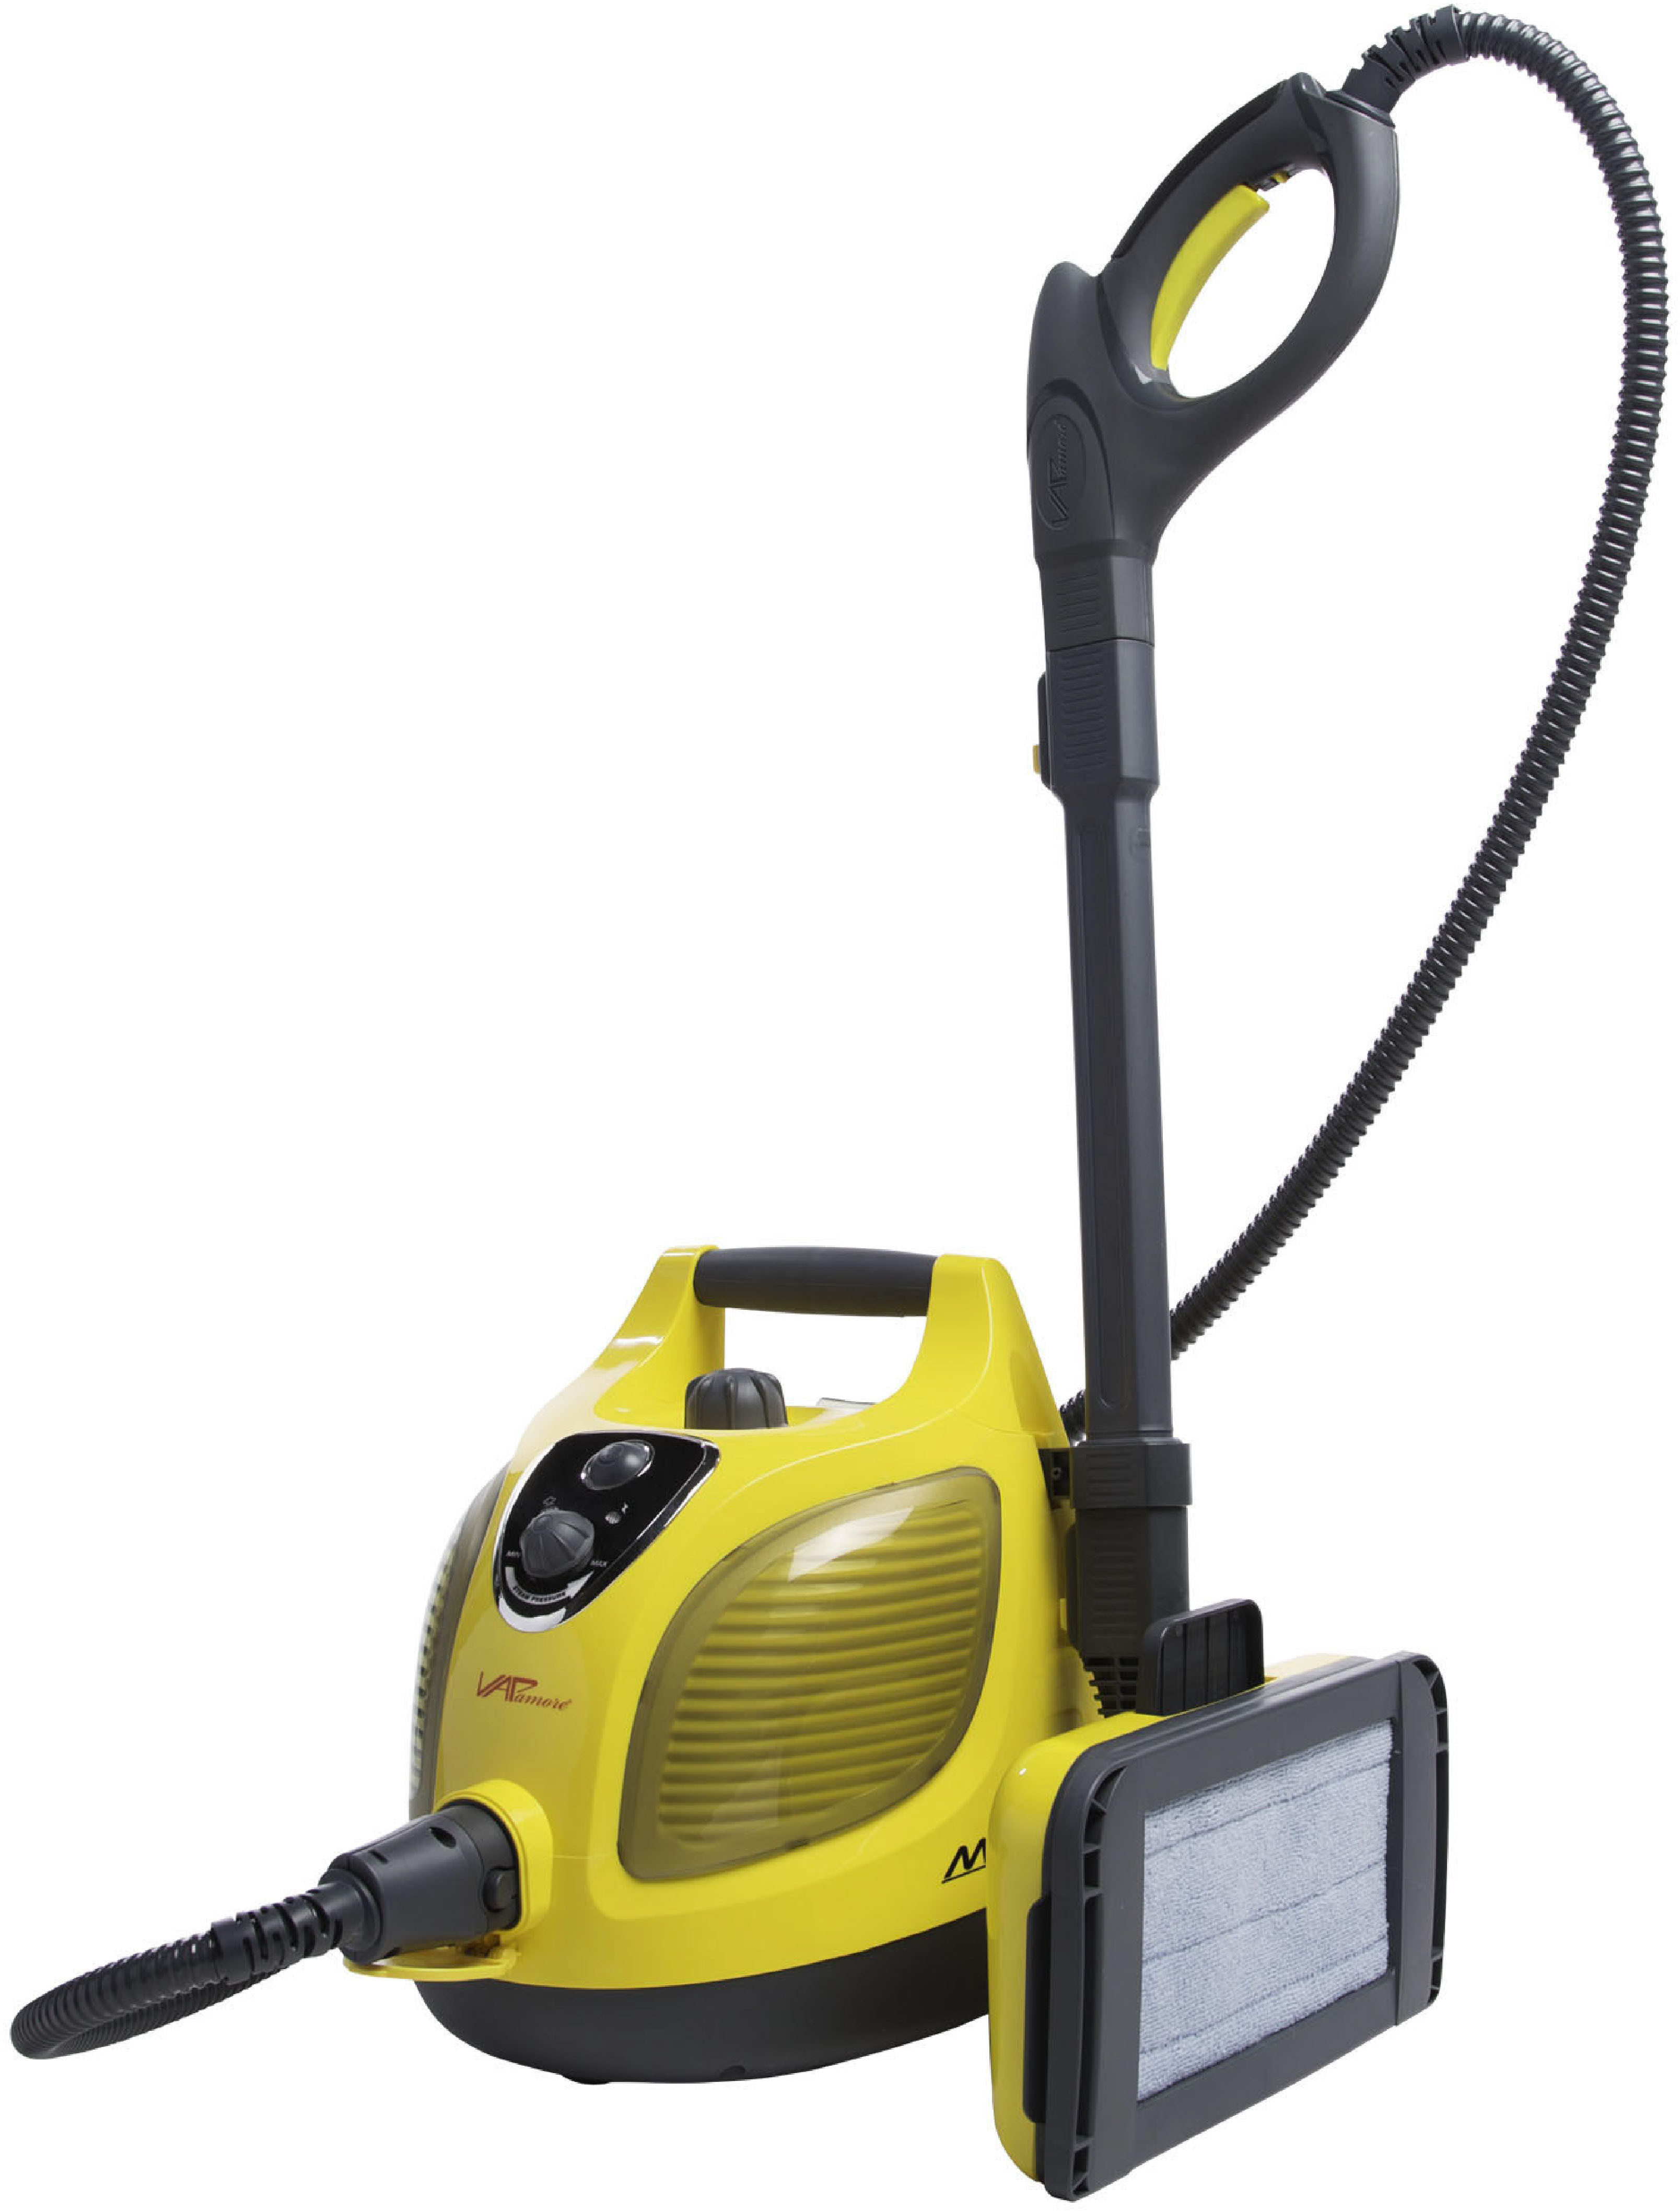 floor yellow cleaning colour astonishing hi for with upright multi prices wallpaper appealing dyson ball wheels vacuum animal res